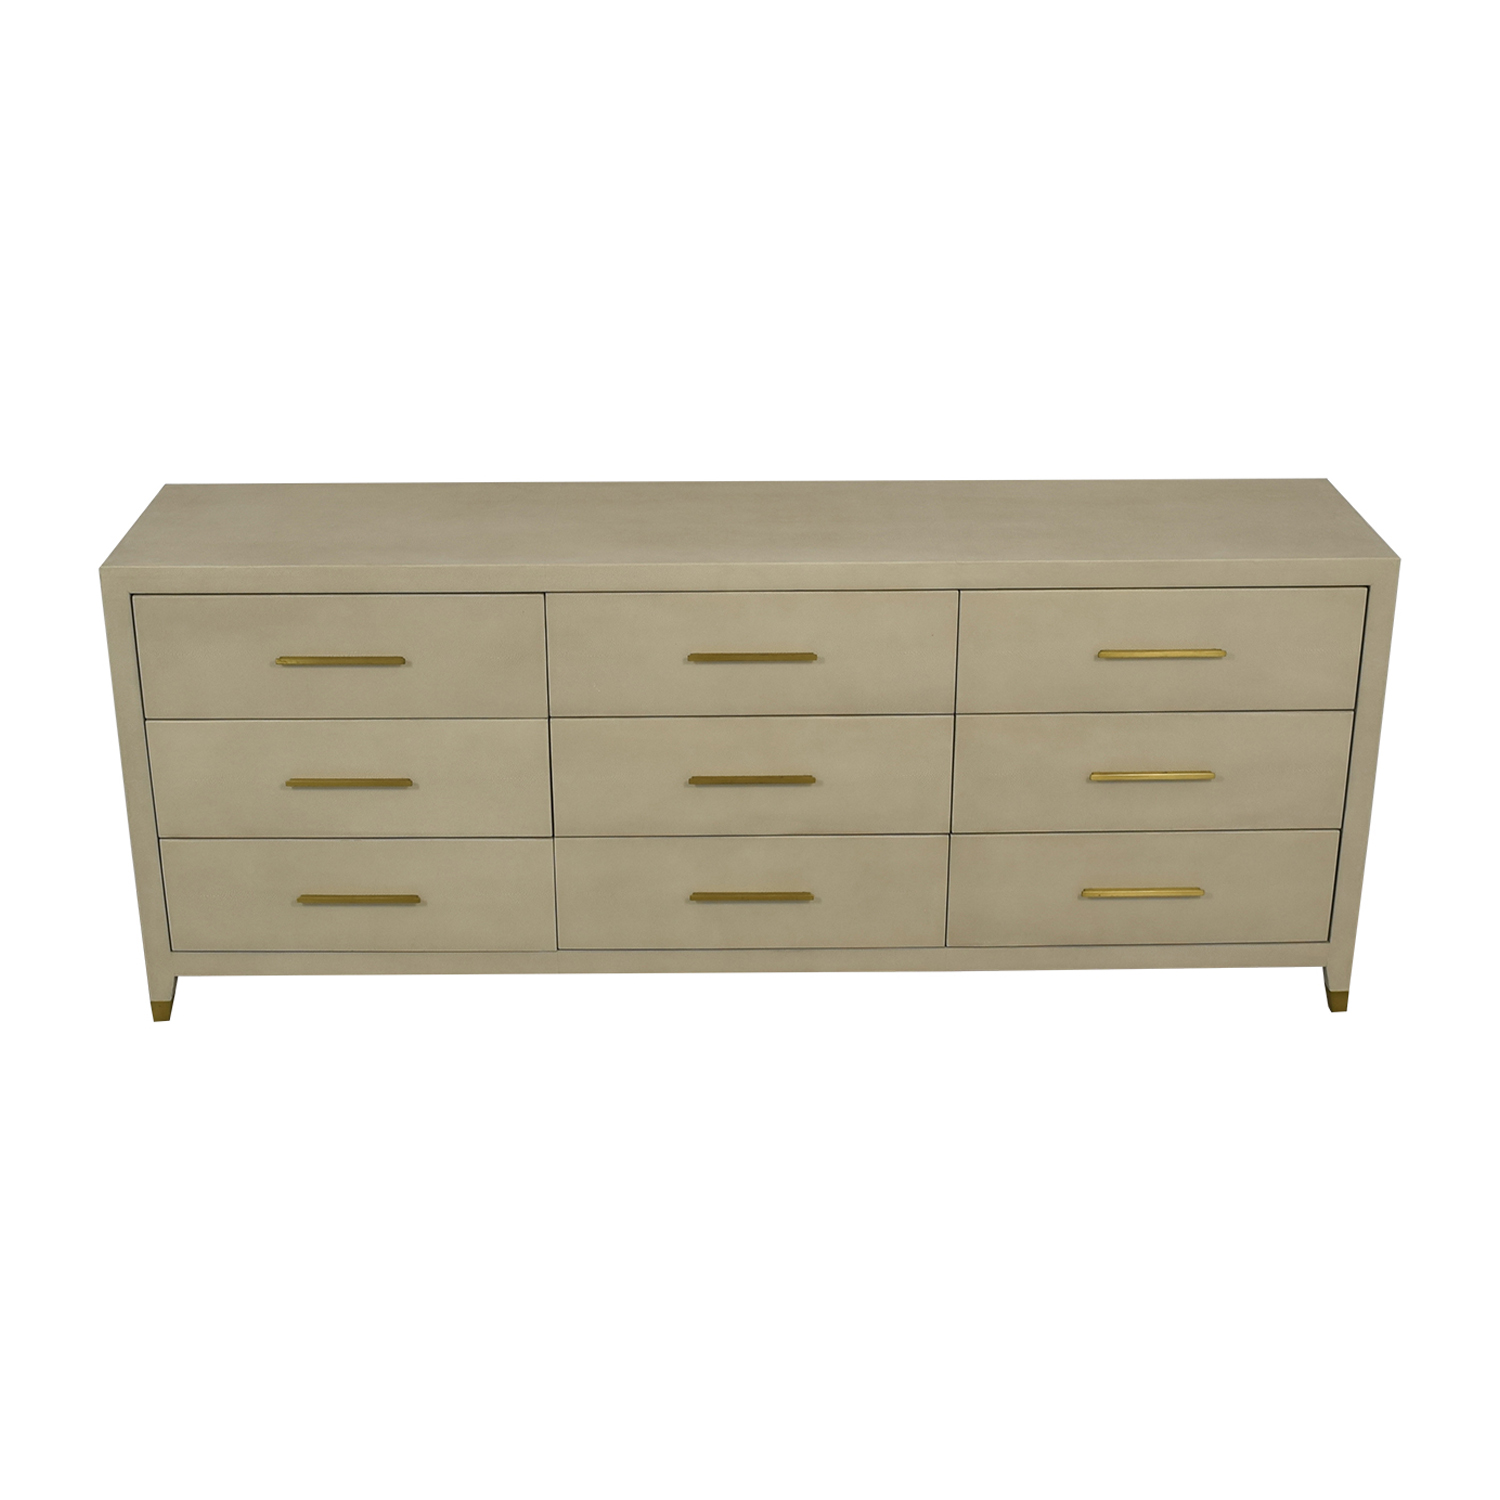 shop Restoration Hardware Graydon Bone Shagreen Nine-Drawer Dresser Restoration Hardware Dressers